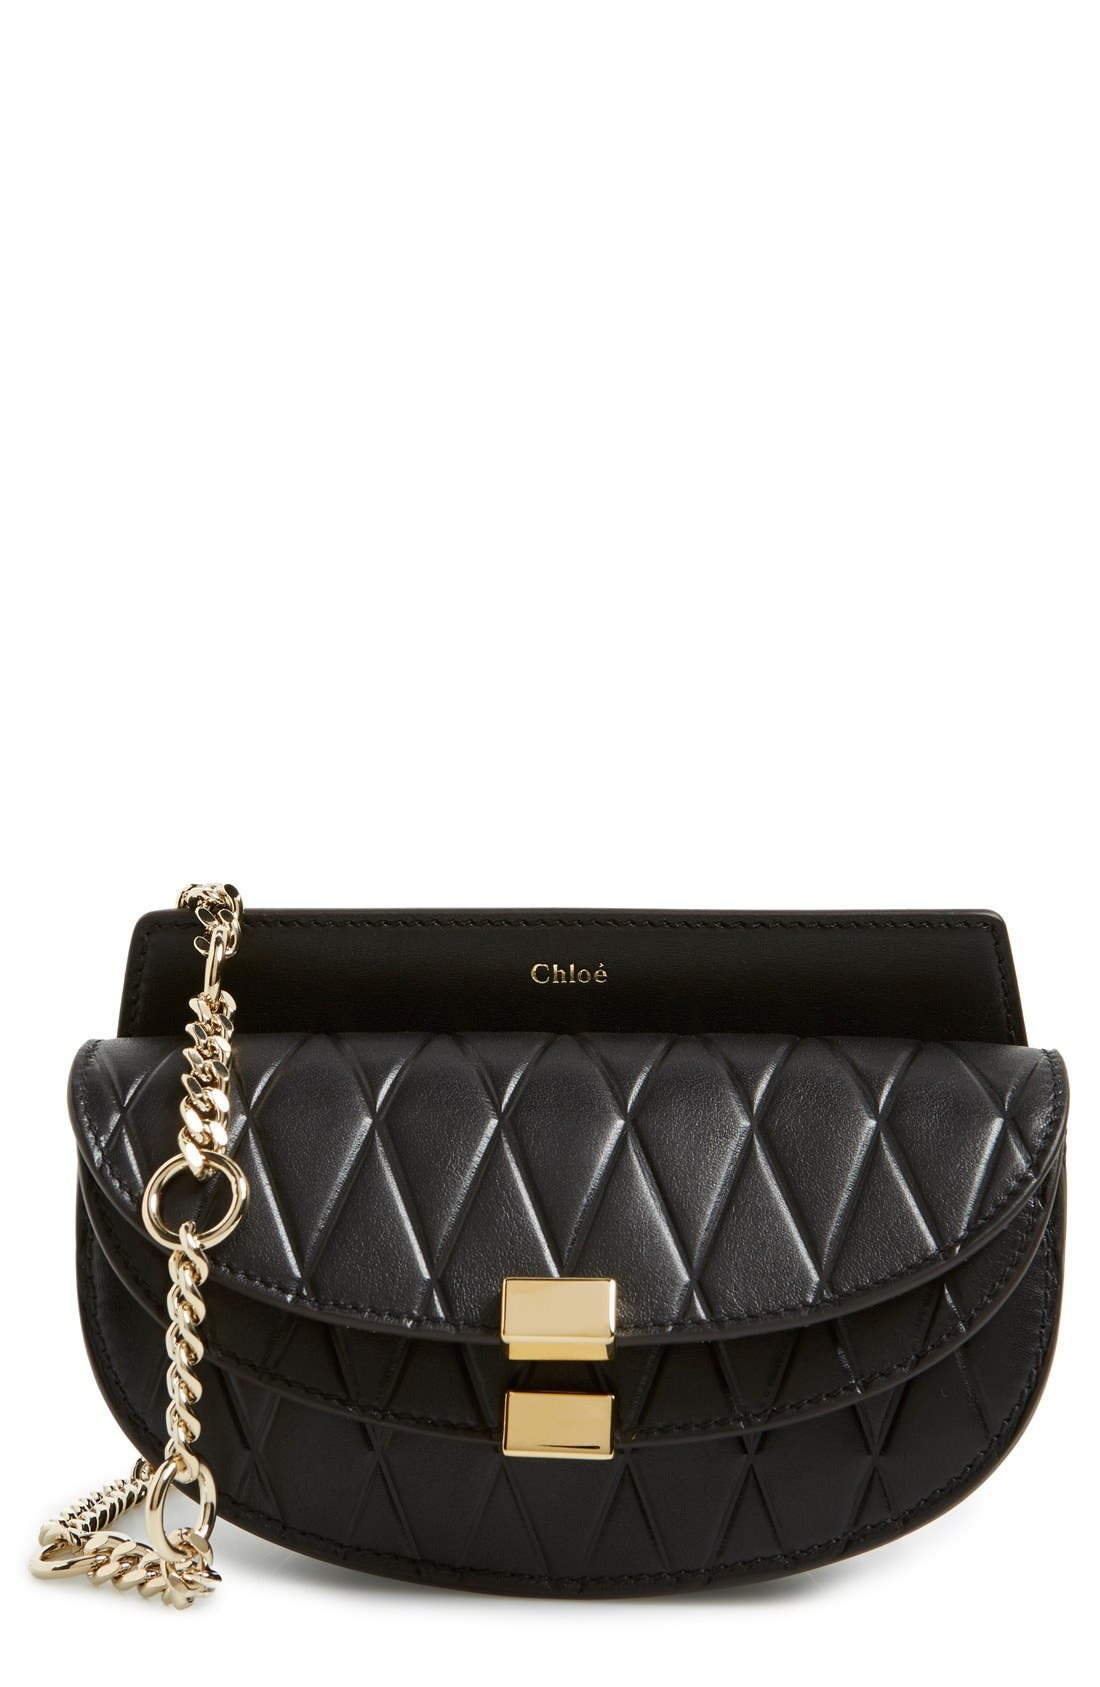 Main Image - Chloé 'Nano Georgia' Embossed Calfskin Leather Fanny Pack